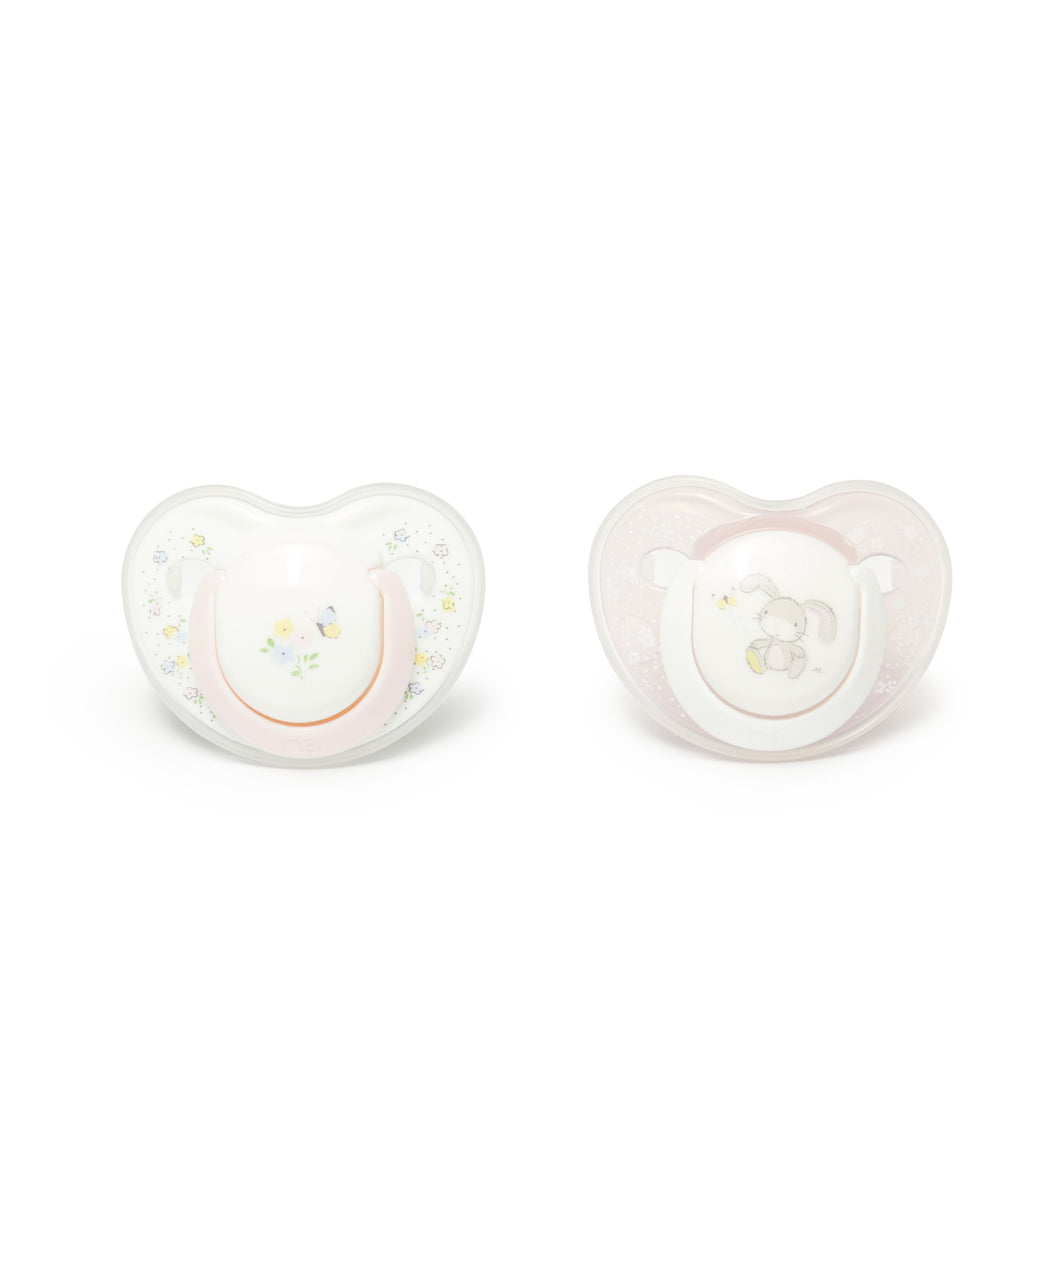 mothercare 0-6m orthodontic soothers 2 pack - bunny